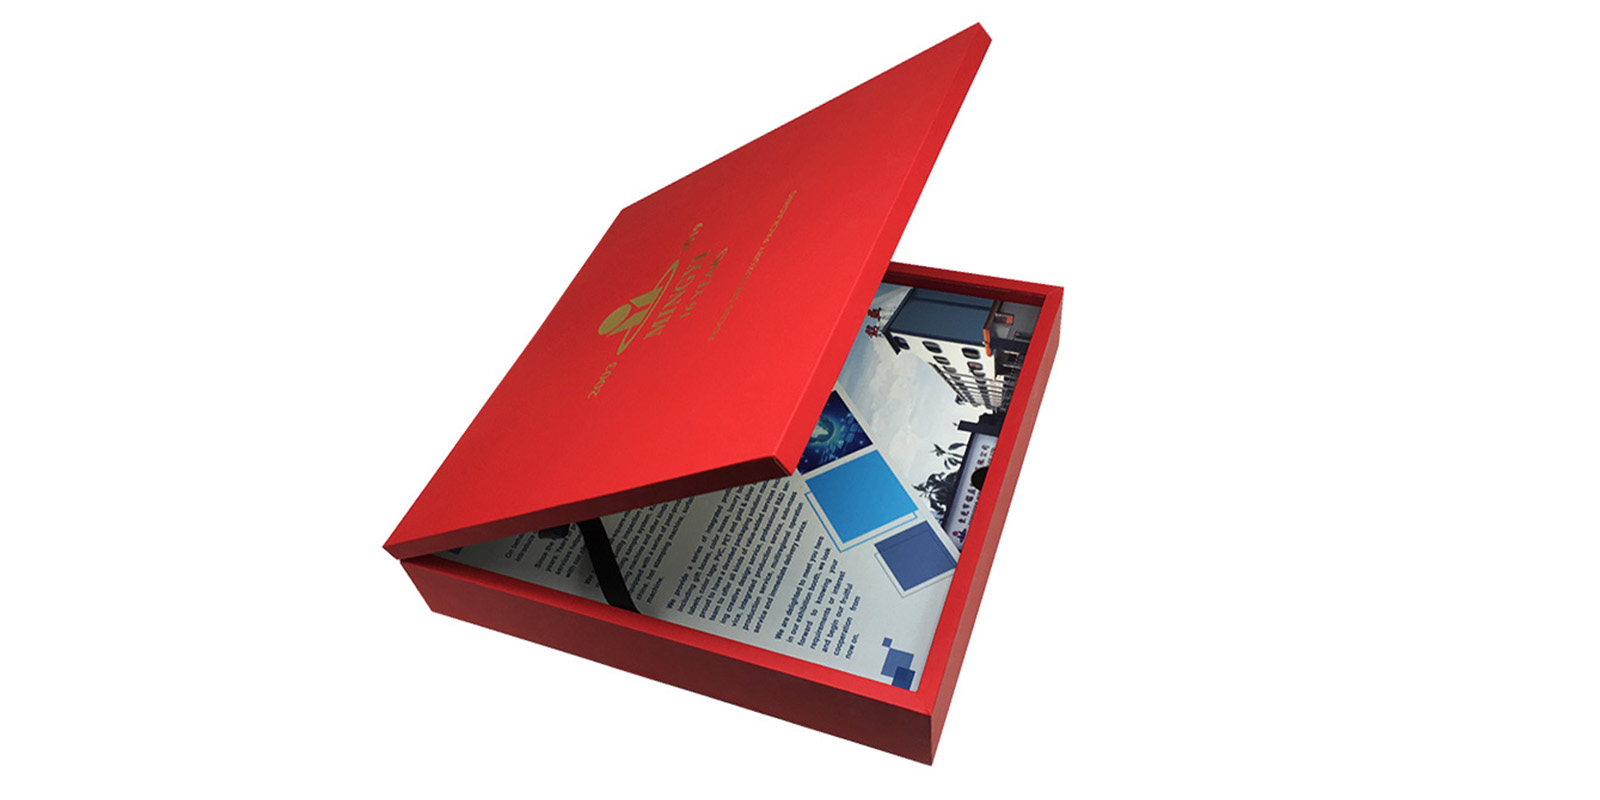 product-Mingyi Printing-Souvenir gift box for vip client luxury LCD screen video play gift box-img